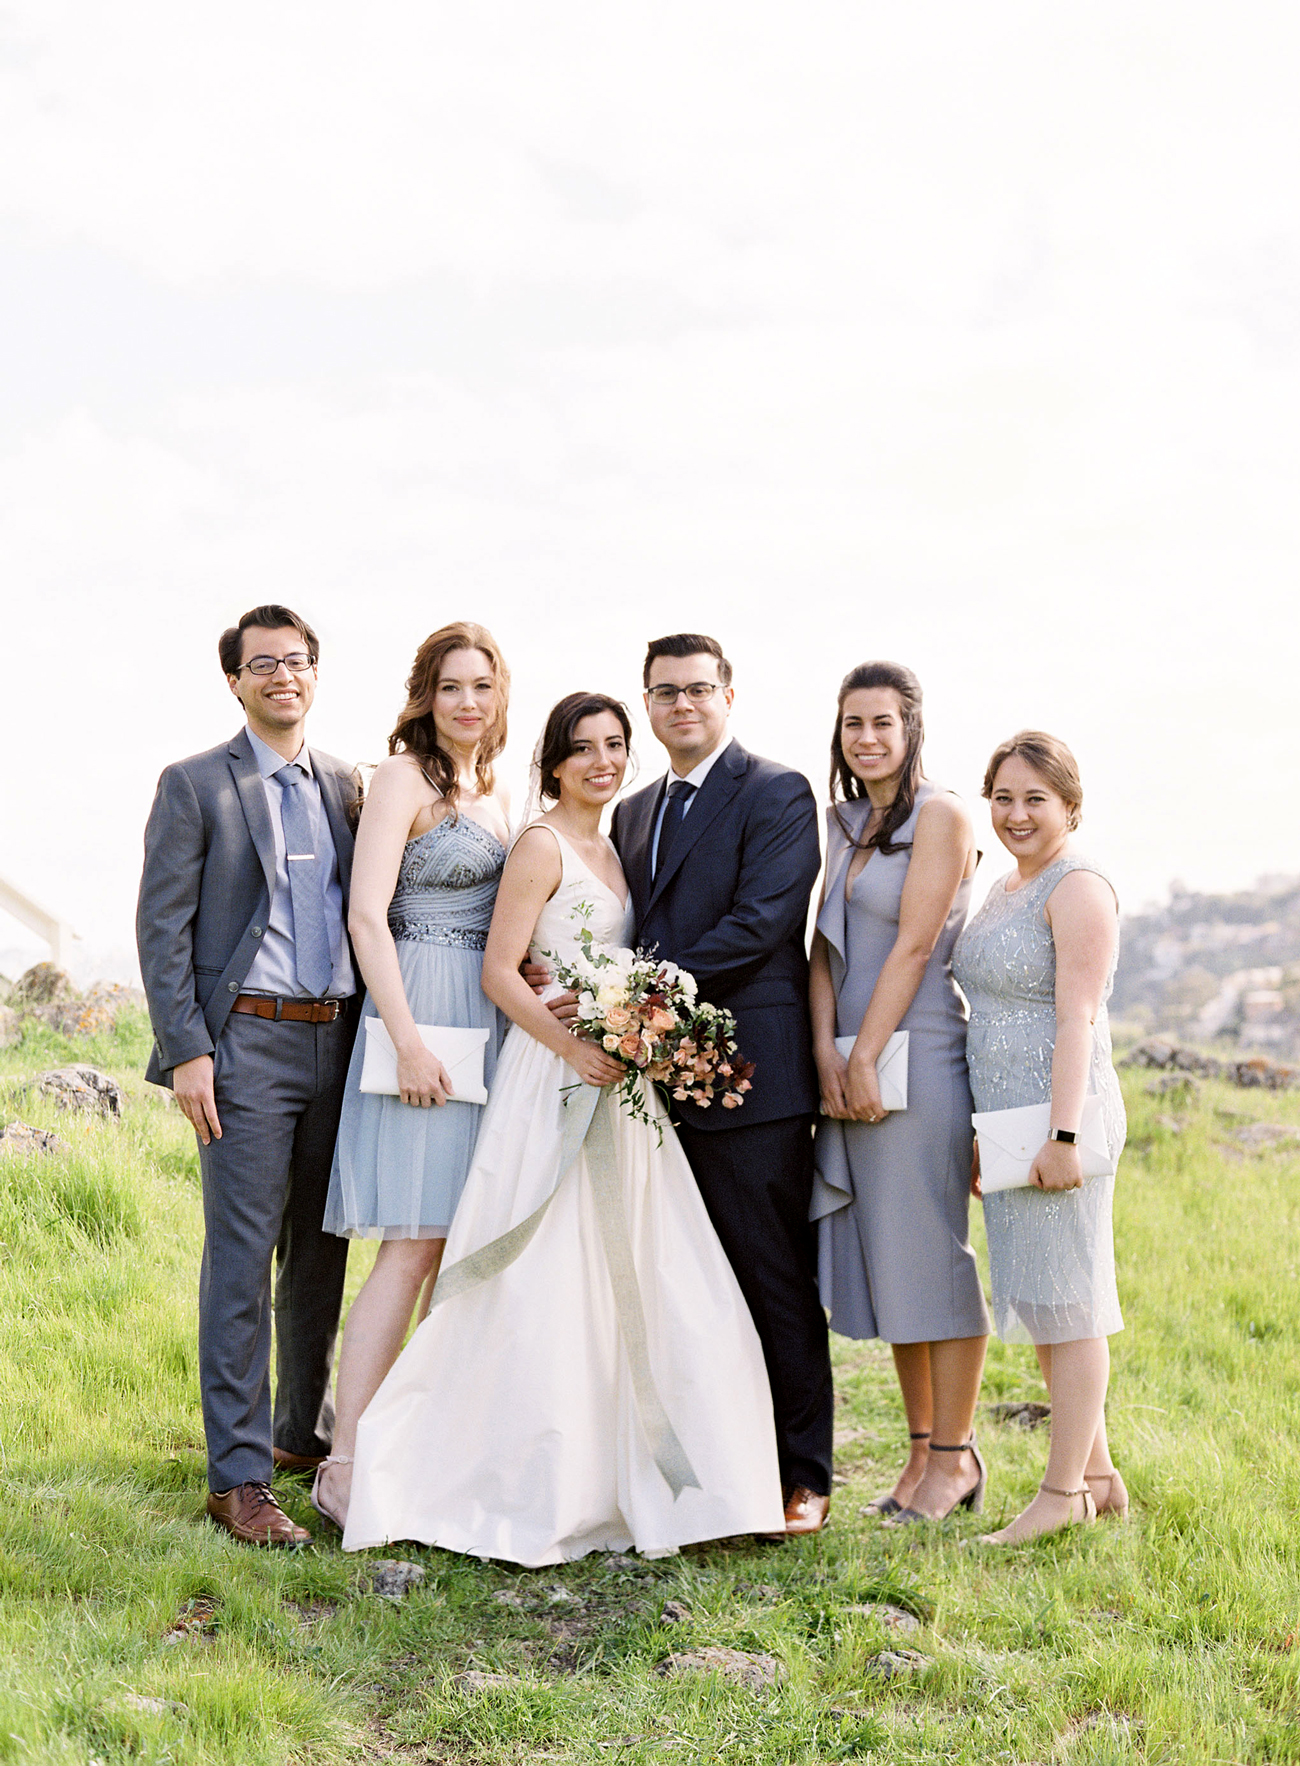 bride and groom with small wedding party on grassy hillside